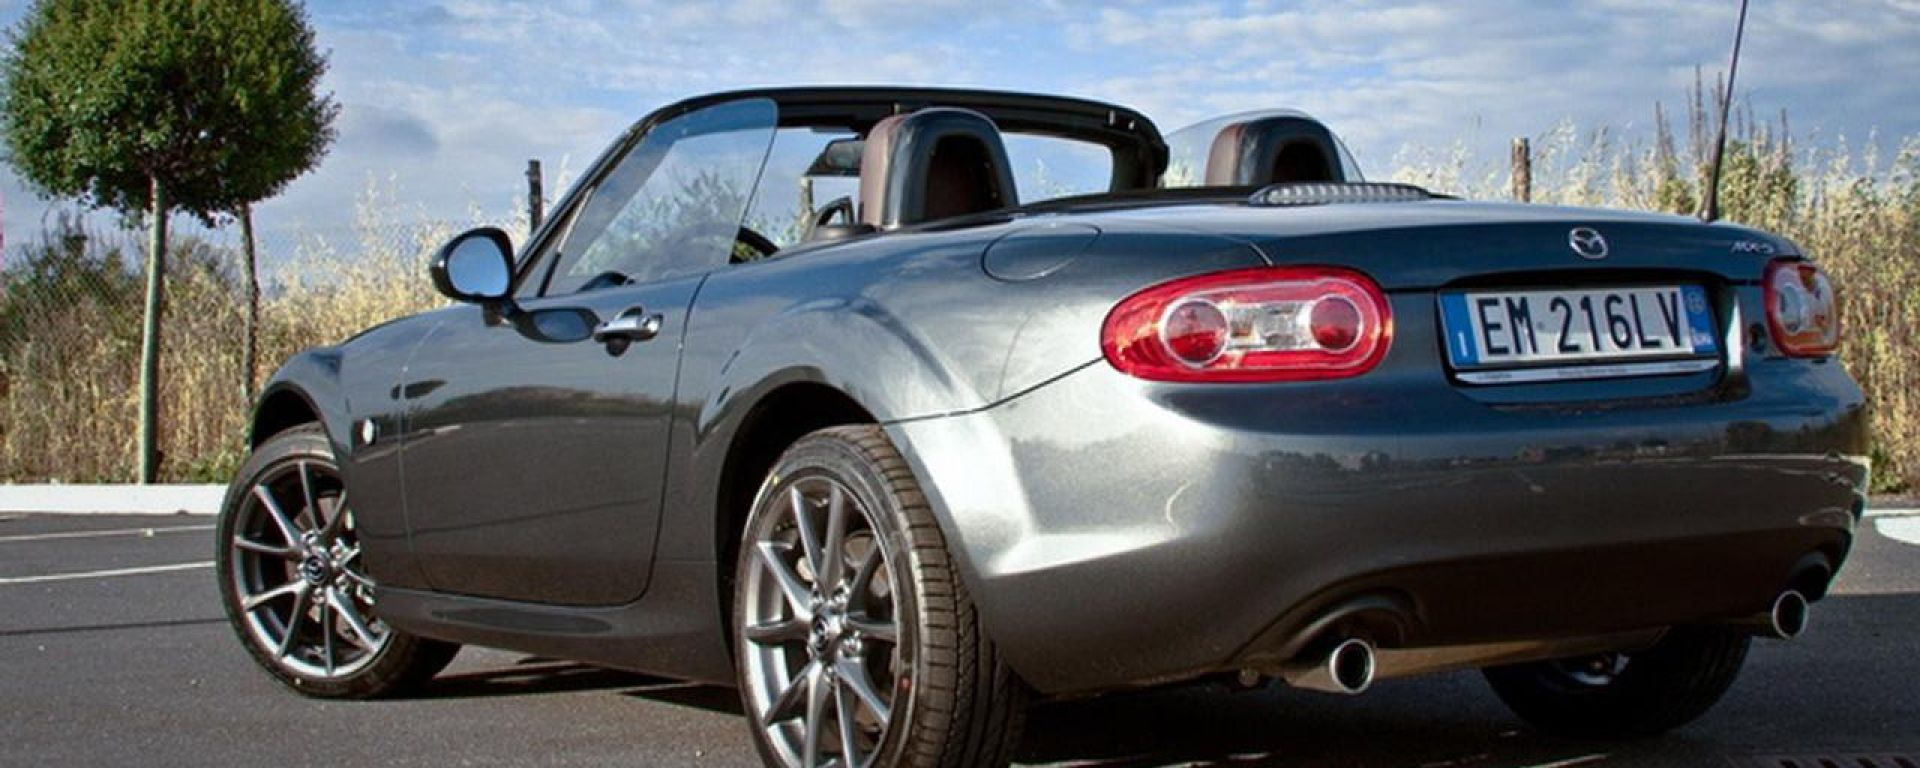 Mazda MX-5 Phoenix Reloaded